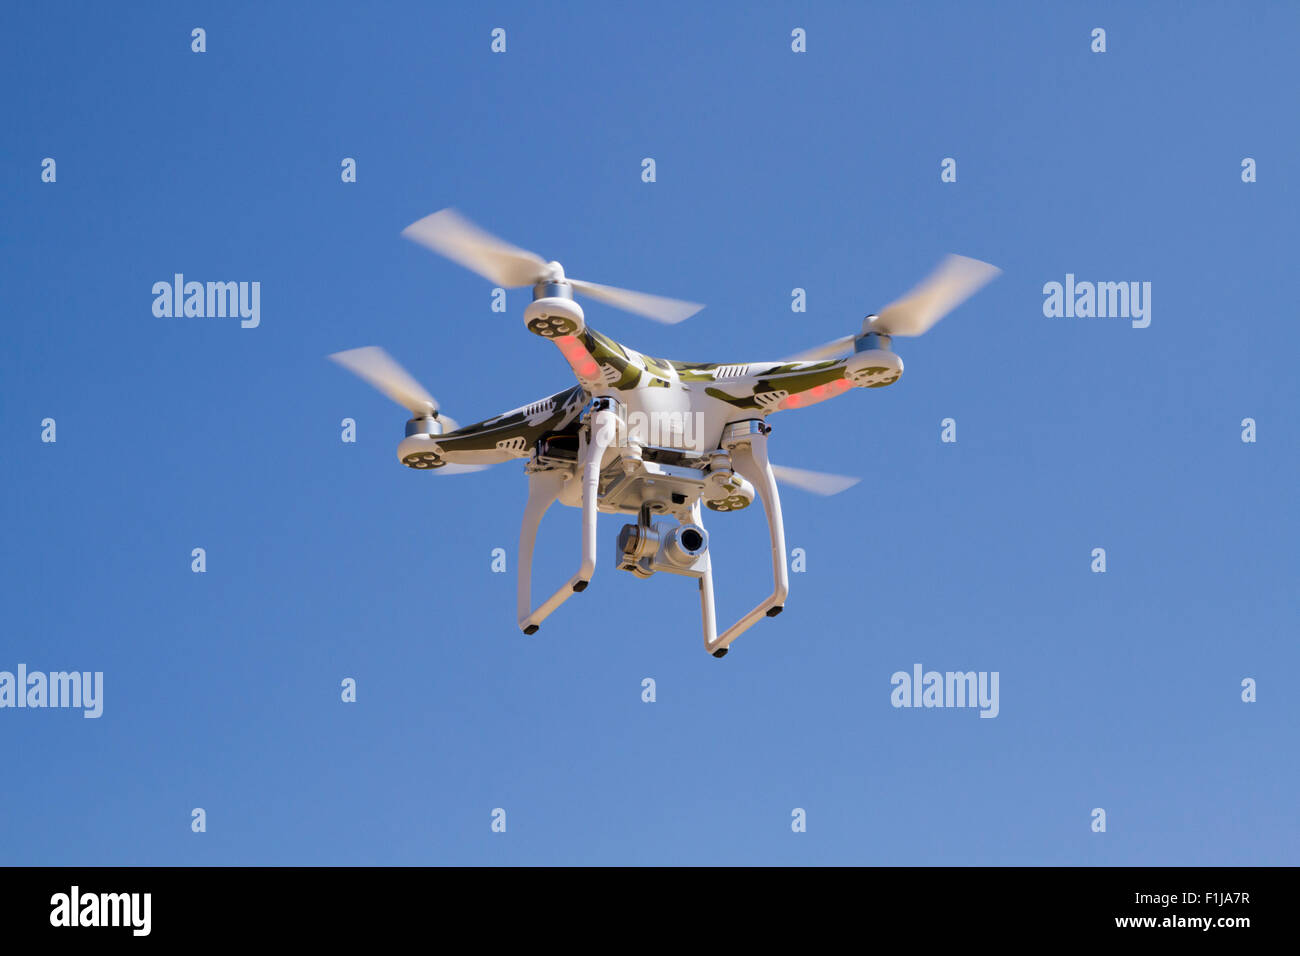 Camouflage Quadrocopter hovering with a camera against a blue sky - Stock Image